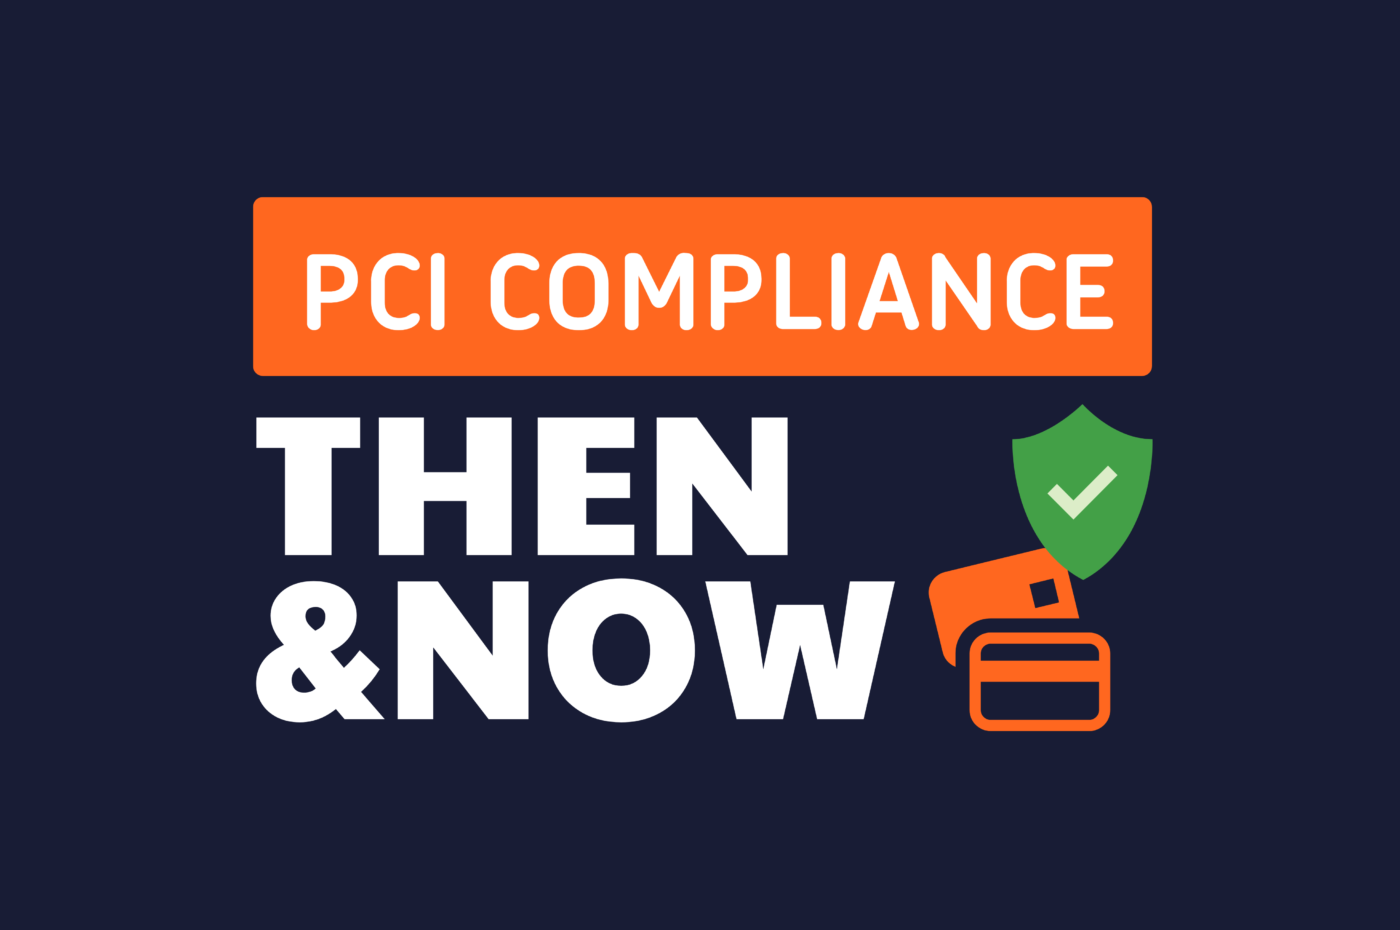 Text Reads: PCI Compliance Then and Now, with graphics of payment cards and a shield